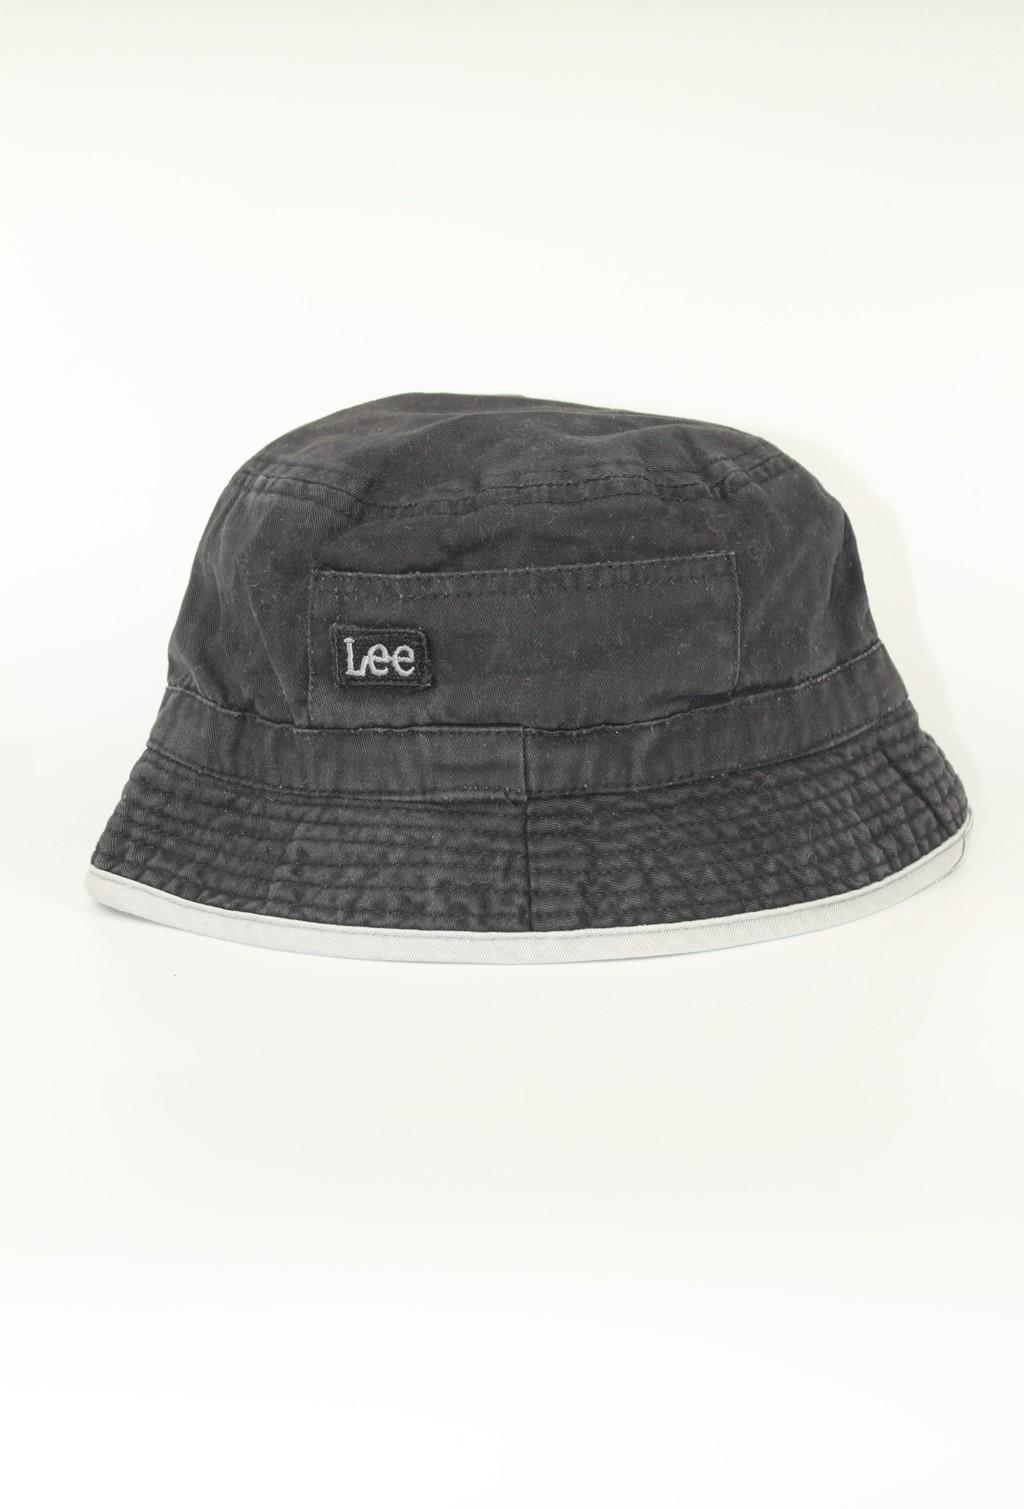 Lee - Bucket hat